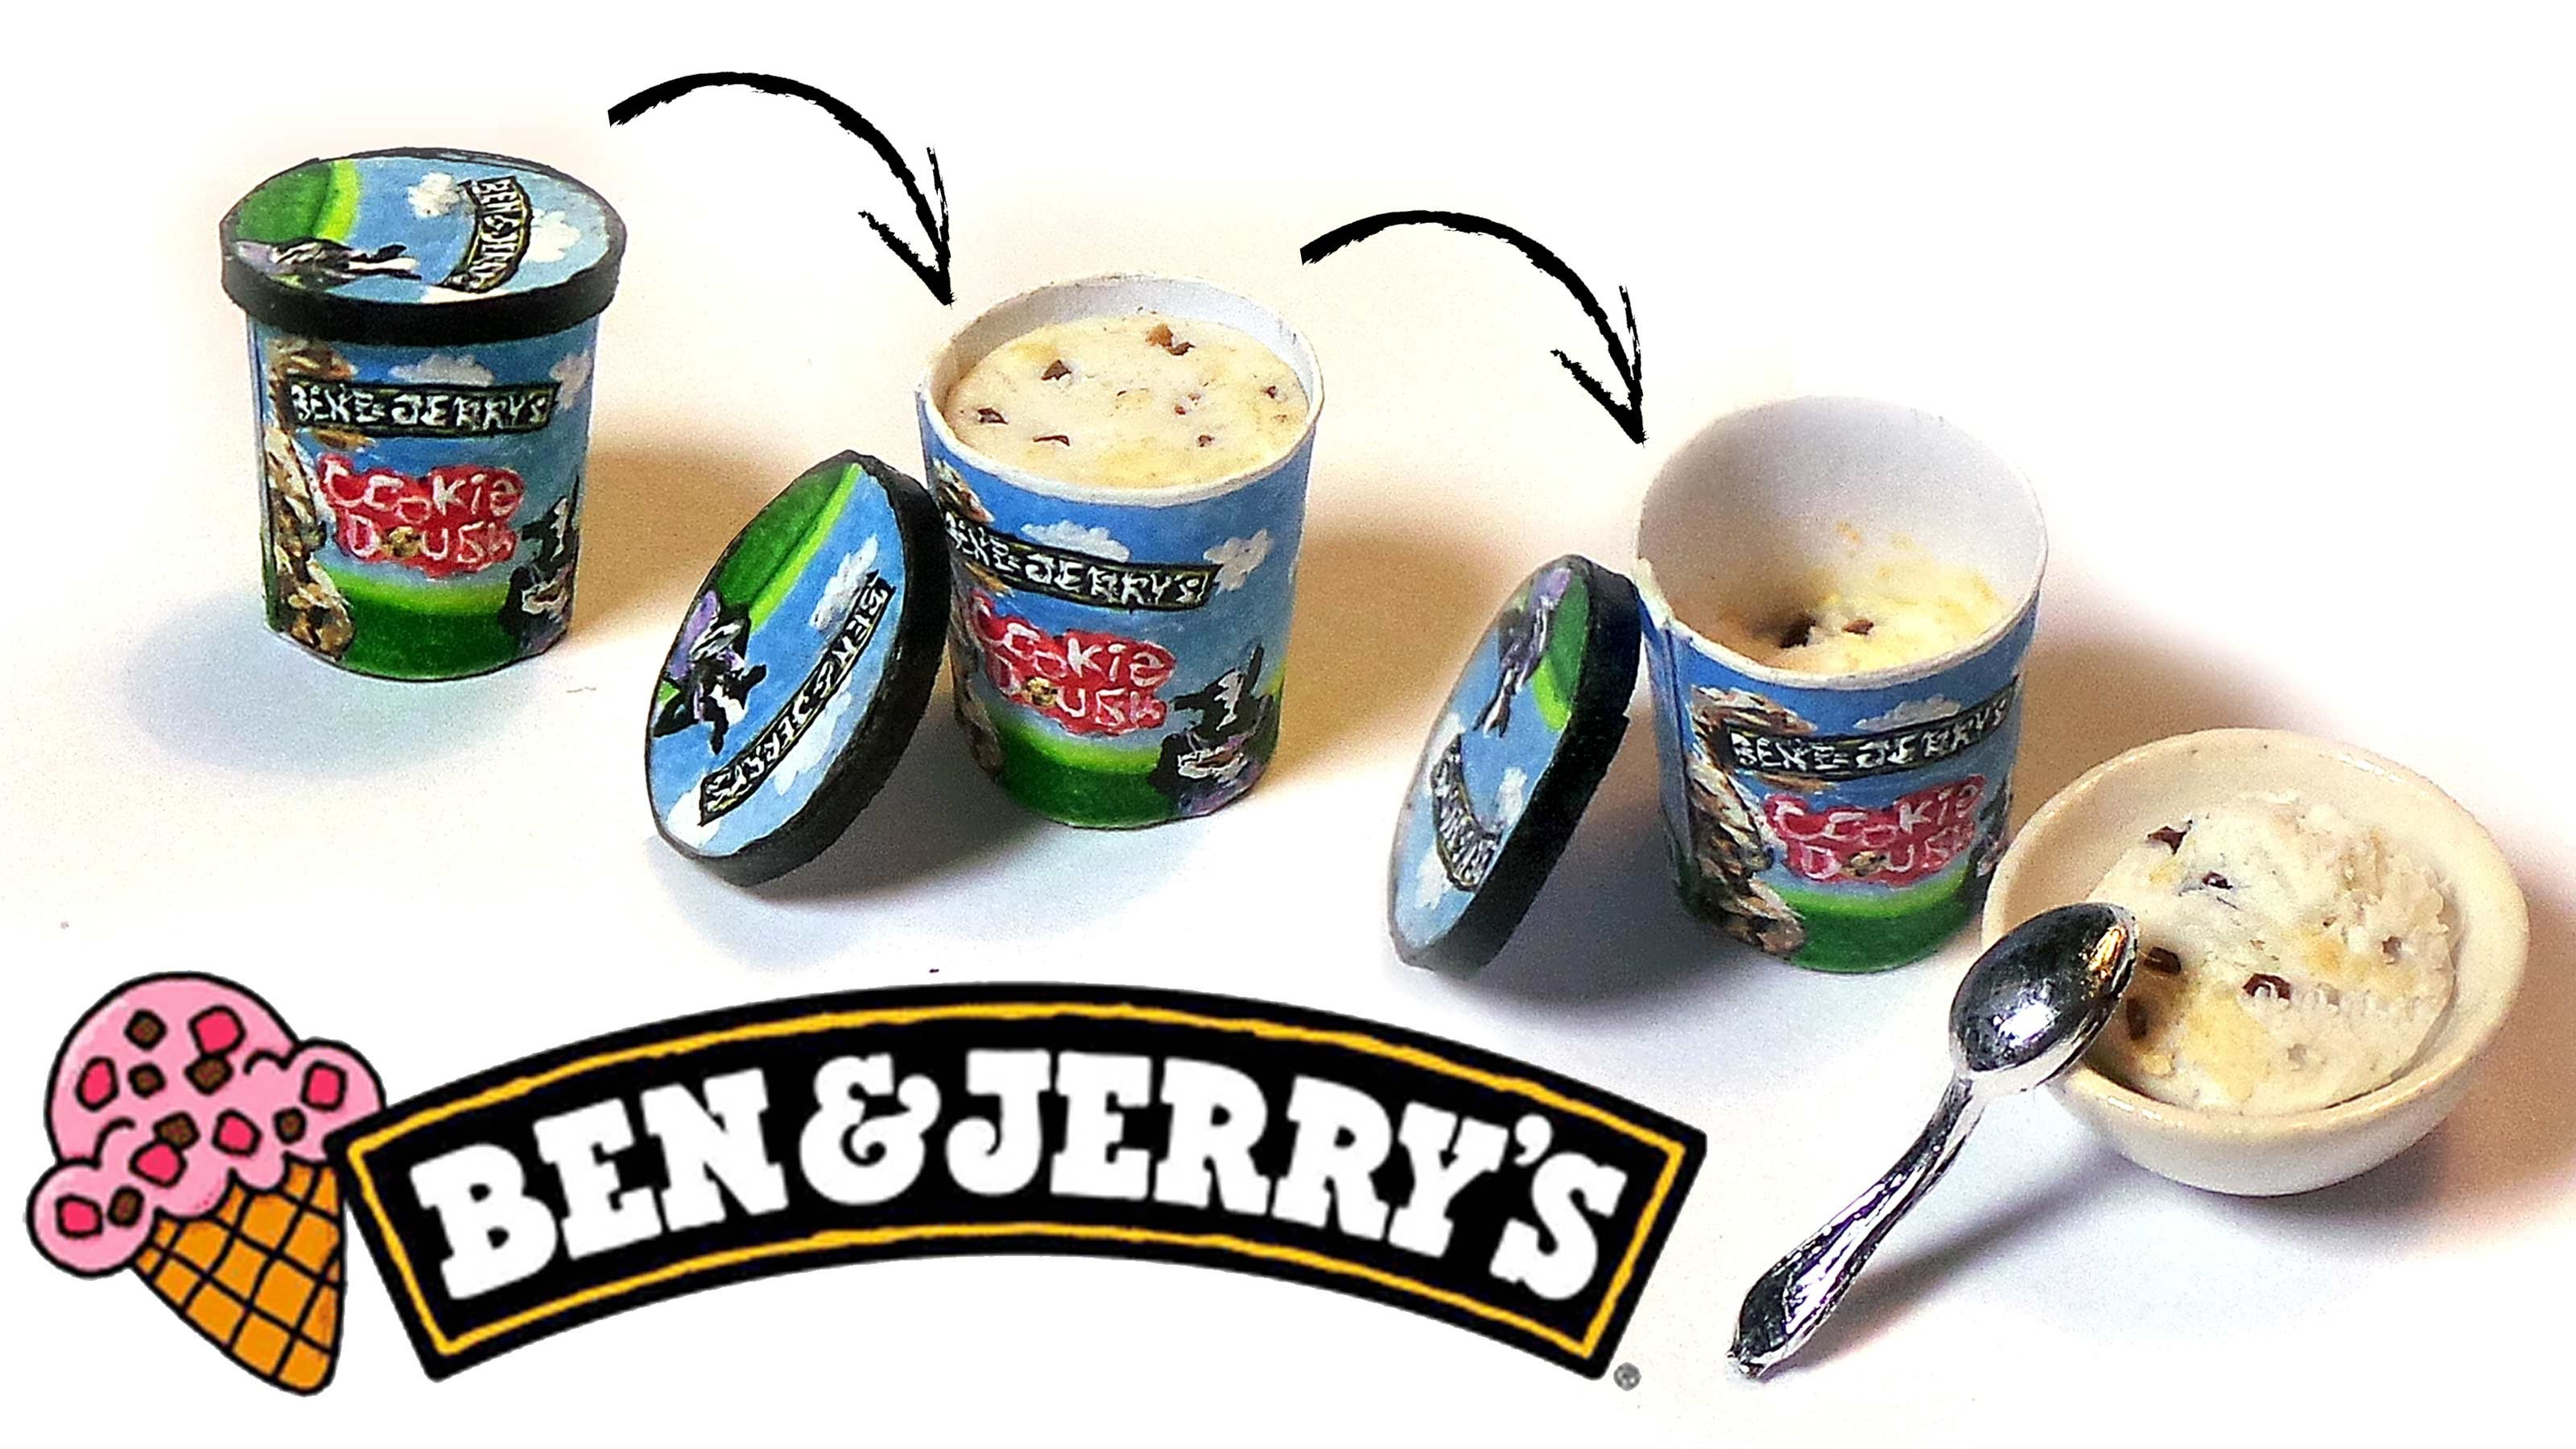 Miniature Ben & Jerry's Ice Cream (Poseable) - Polymer Clay Tutorial